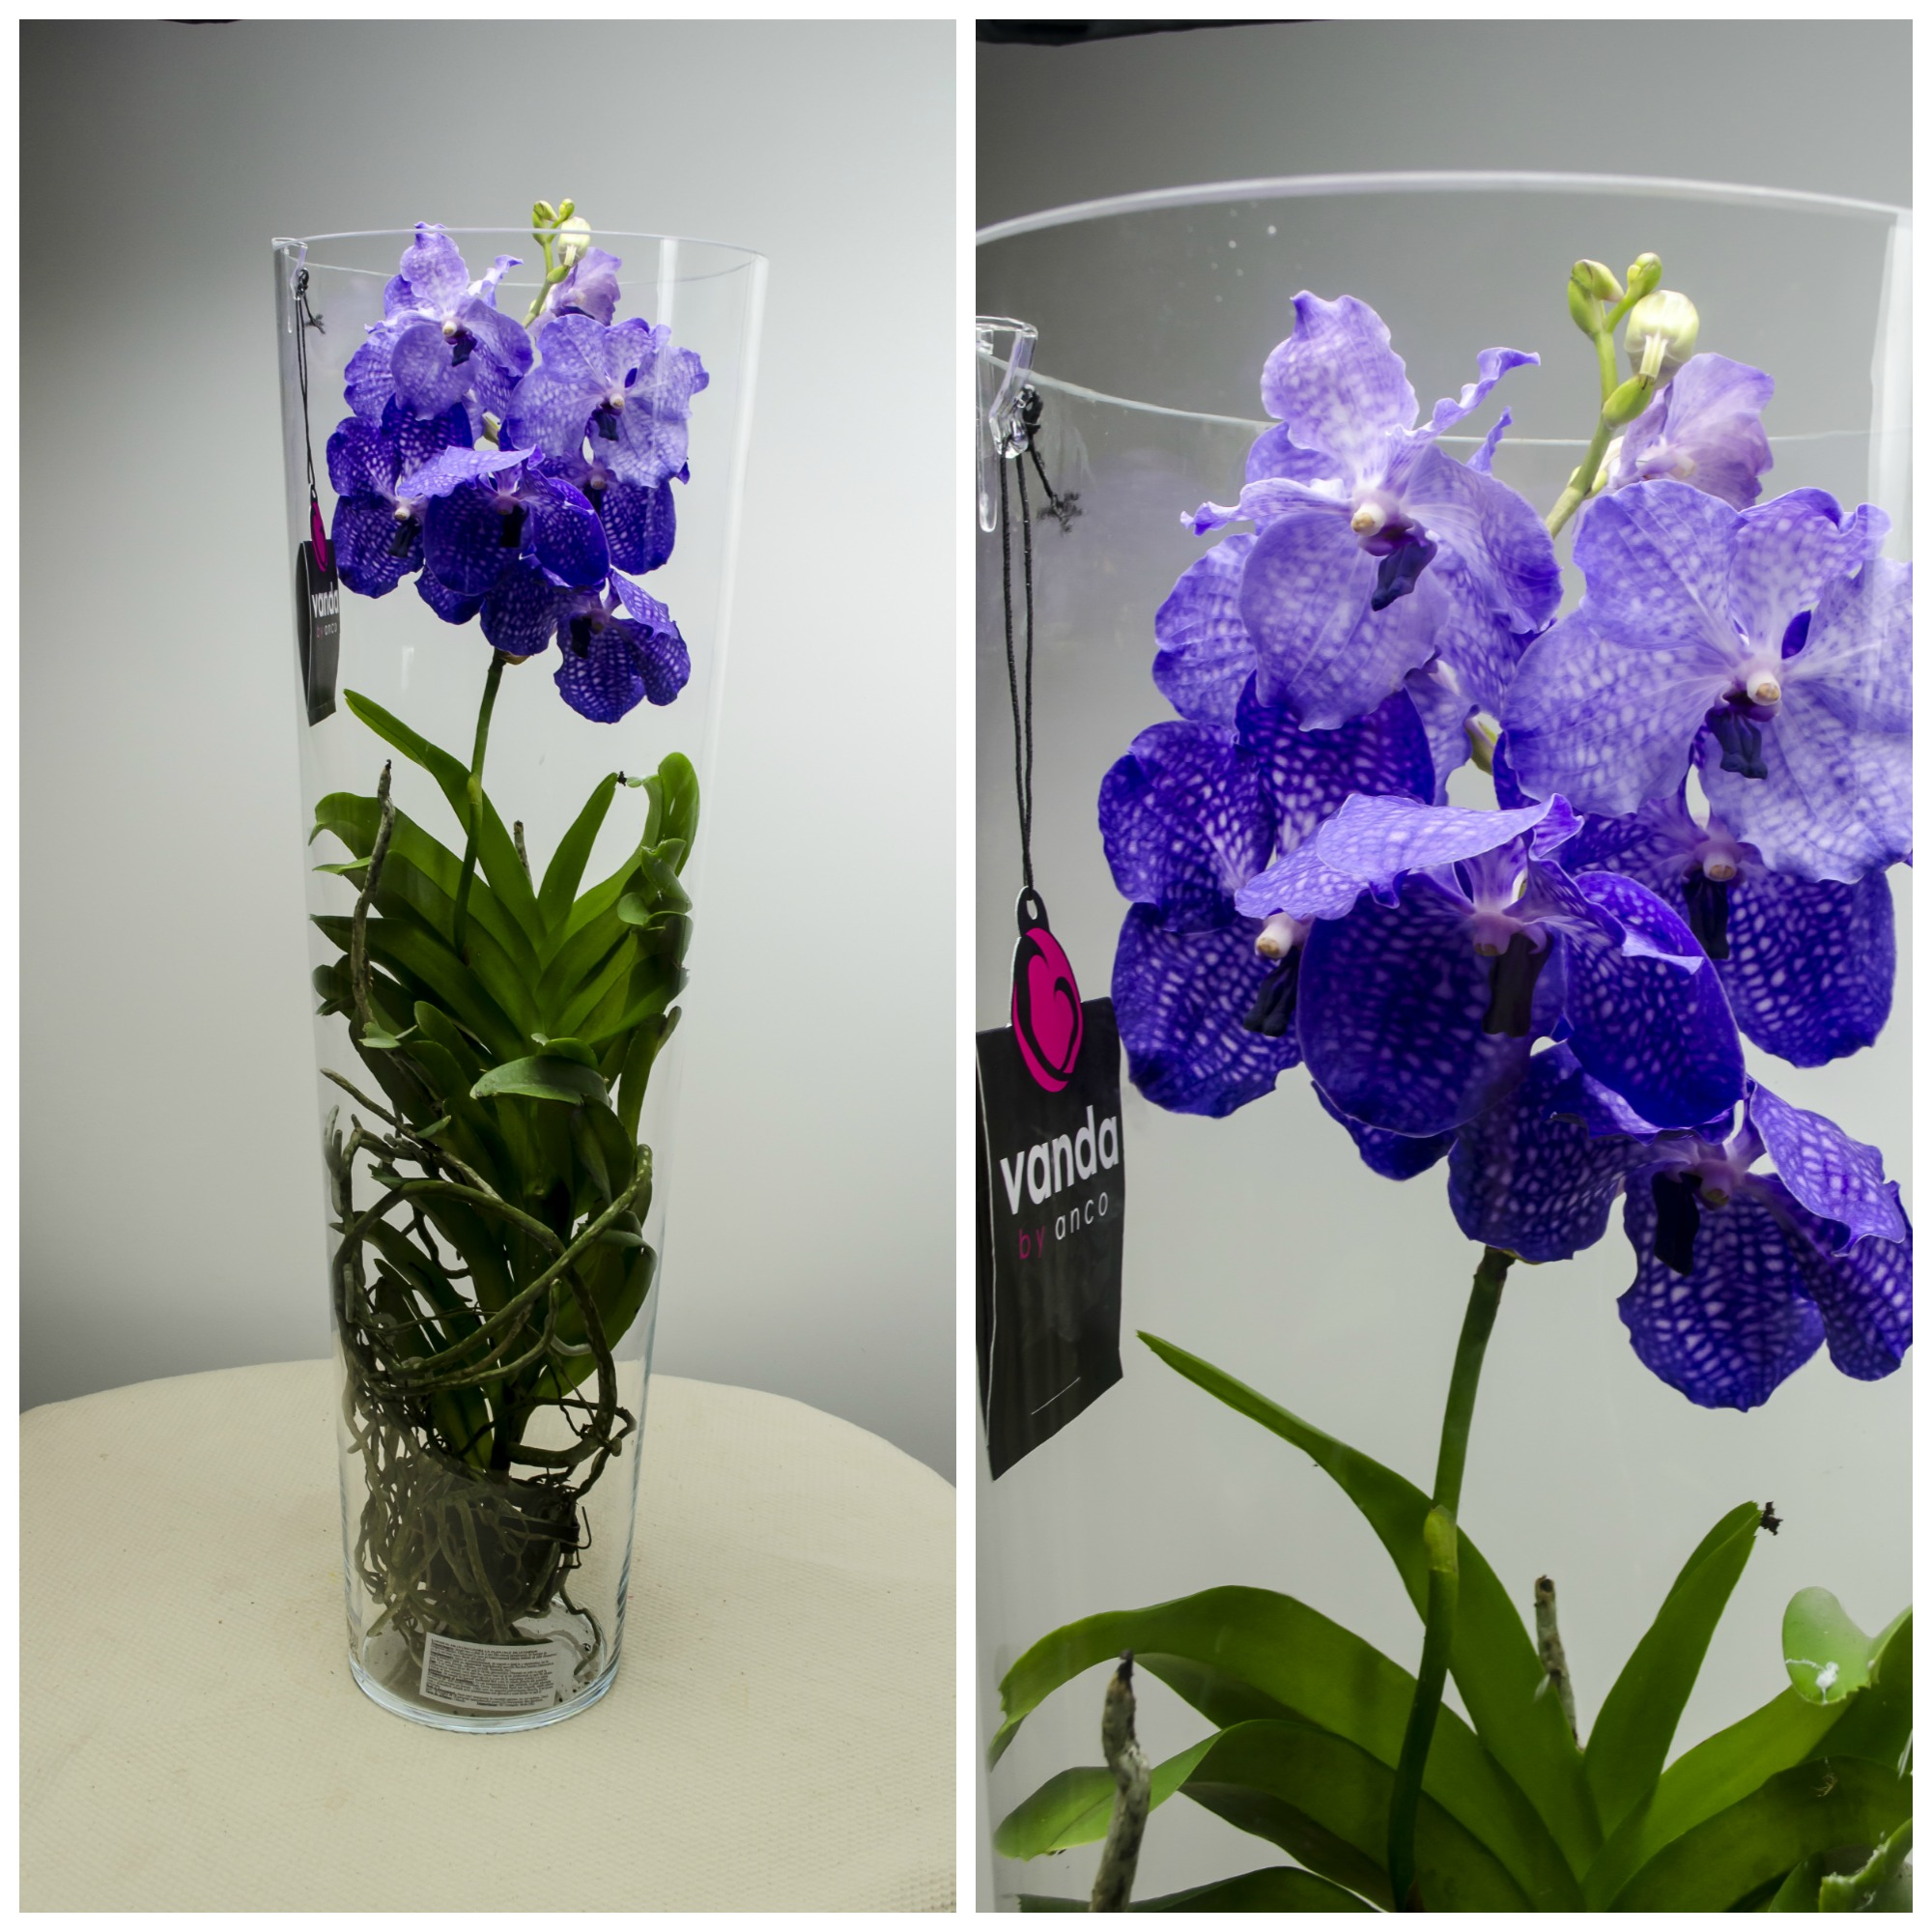 Melbourne flower: Orhidee Vanda in vas de sticla